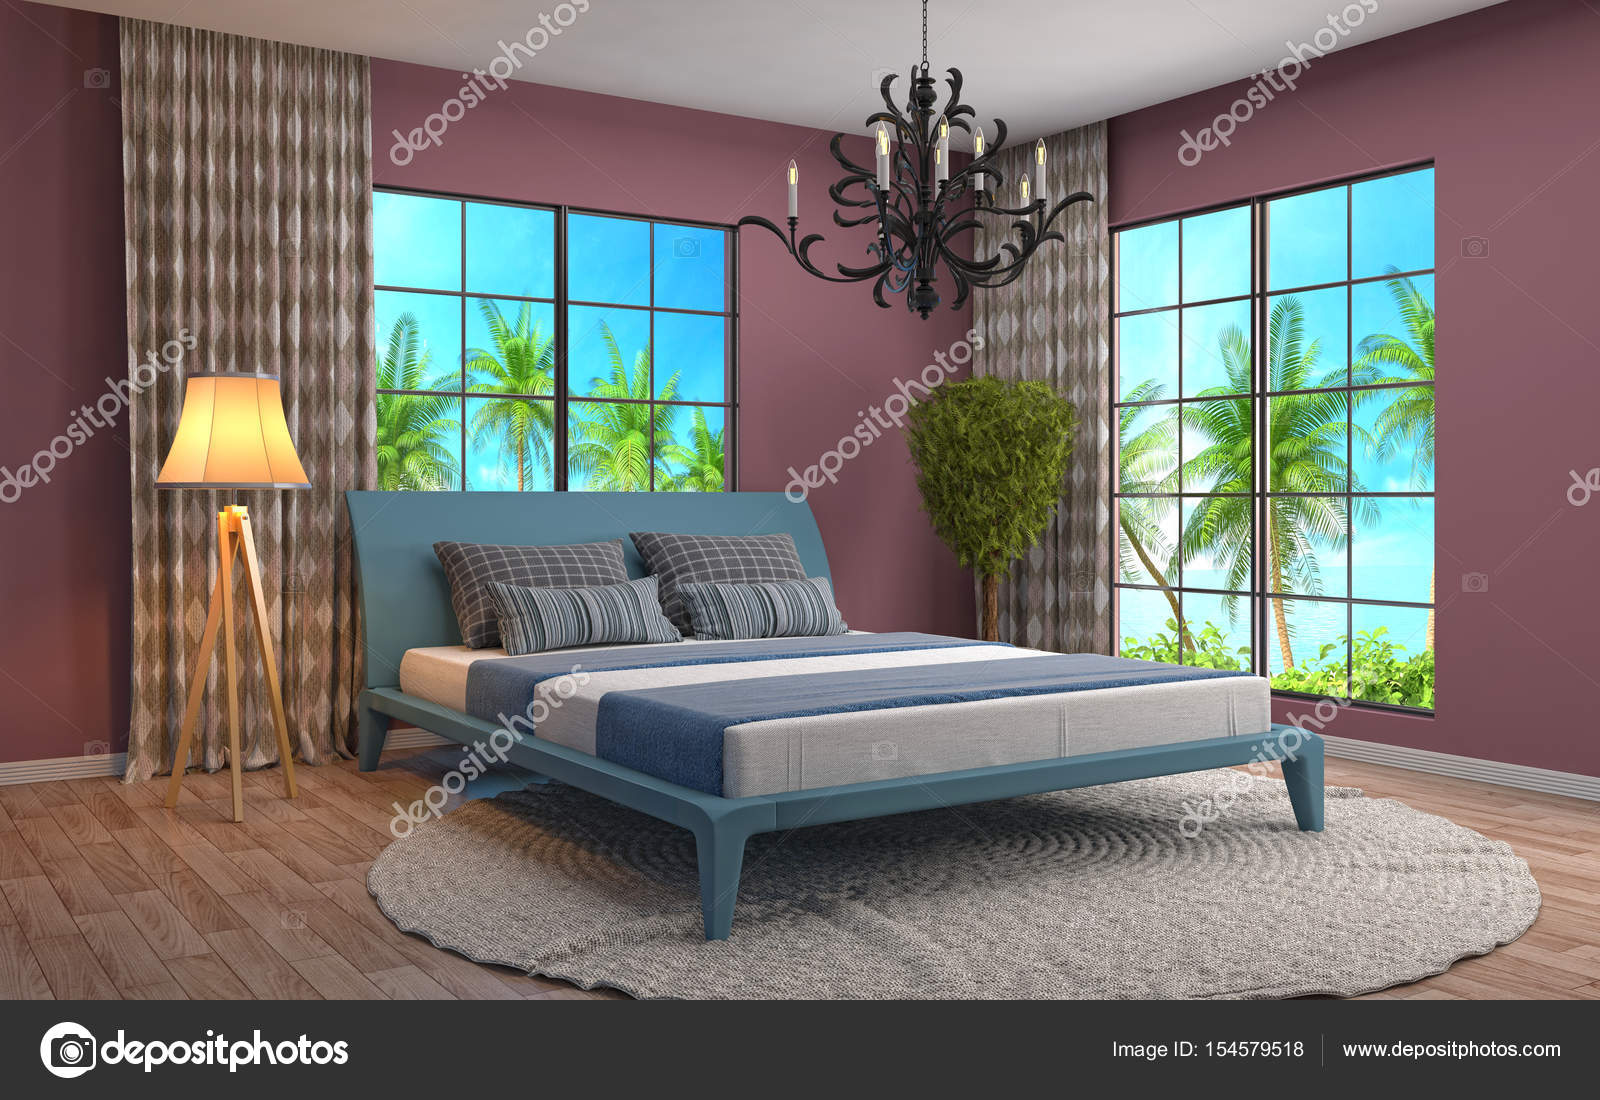 intrieur de chambre coucher illustration 3d image de stockernumber2